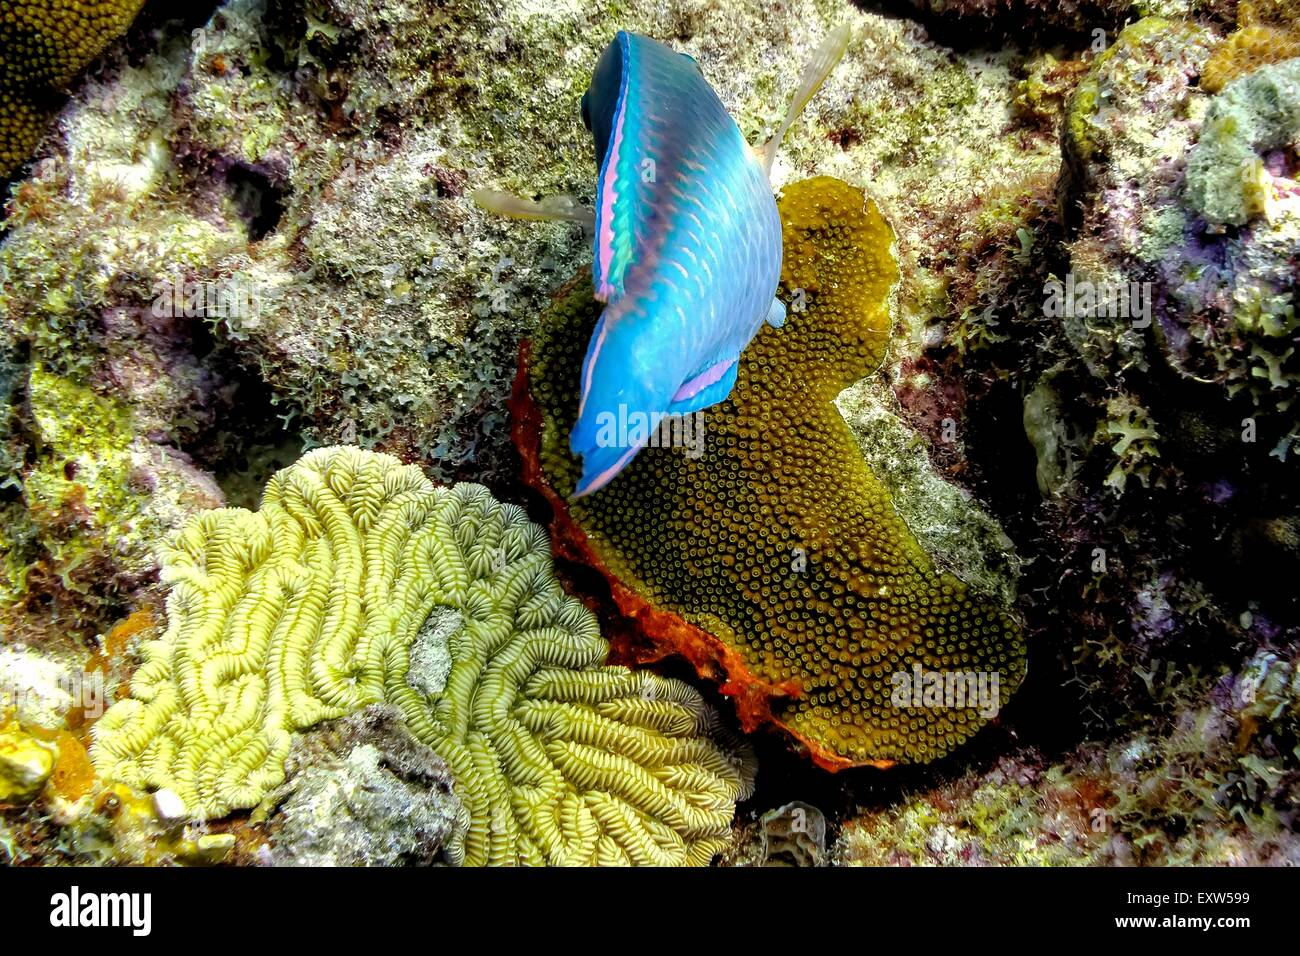 Stoplight Parrotfish Cleaning Corals at Buddy's Reef, Bonaire - Stock Image